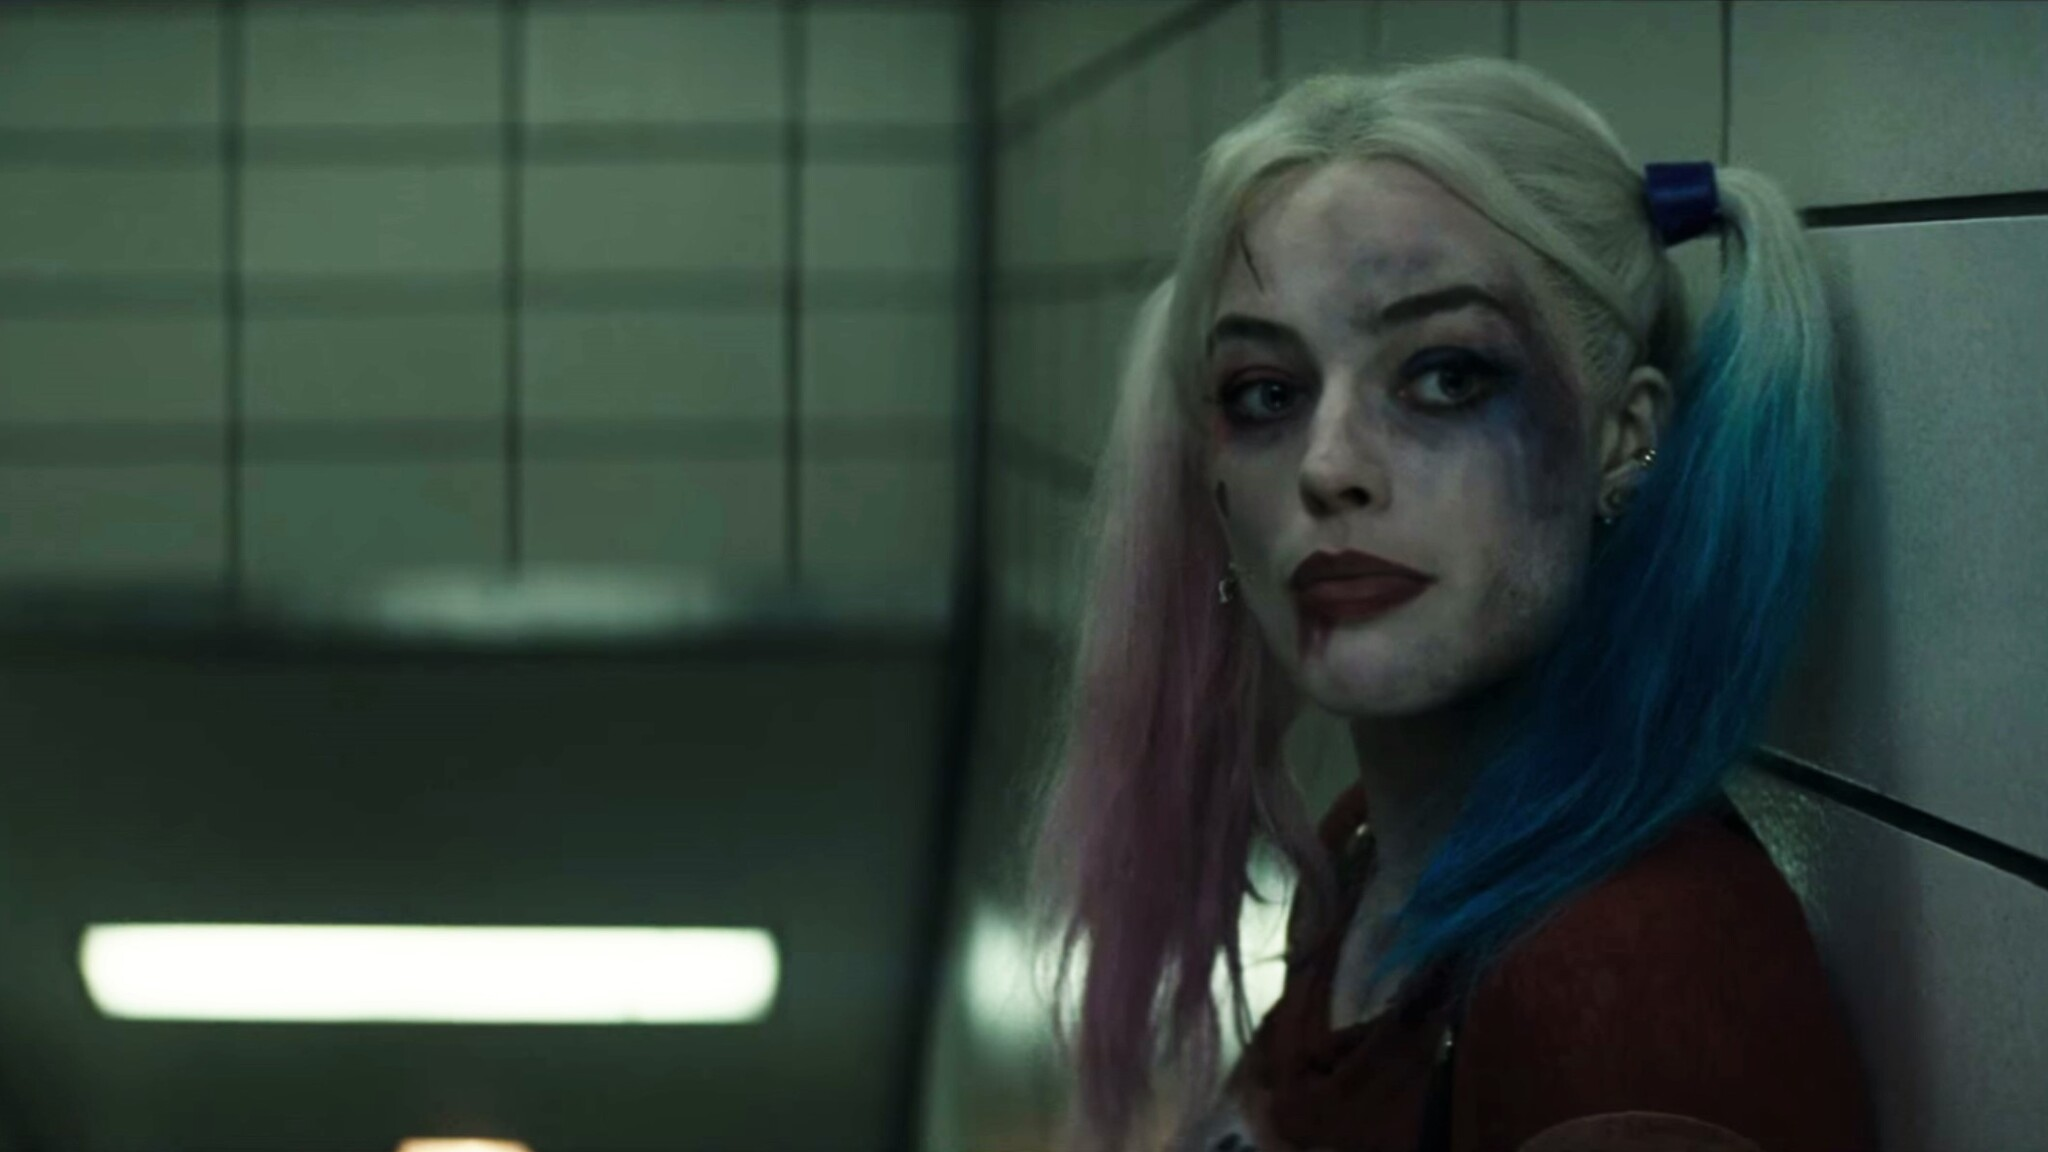 Harley Quinn Wallpaper Suicide Squad: 2048x1152 Harley Quinn Suicide Squad 2048x1152 Resolution